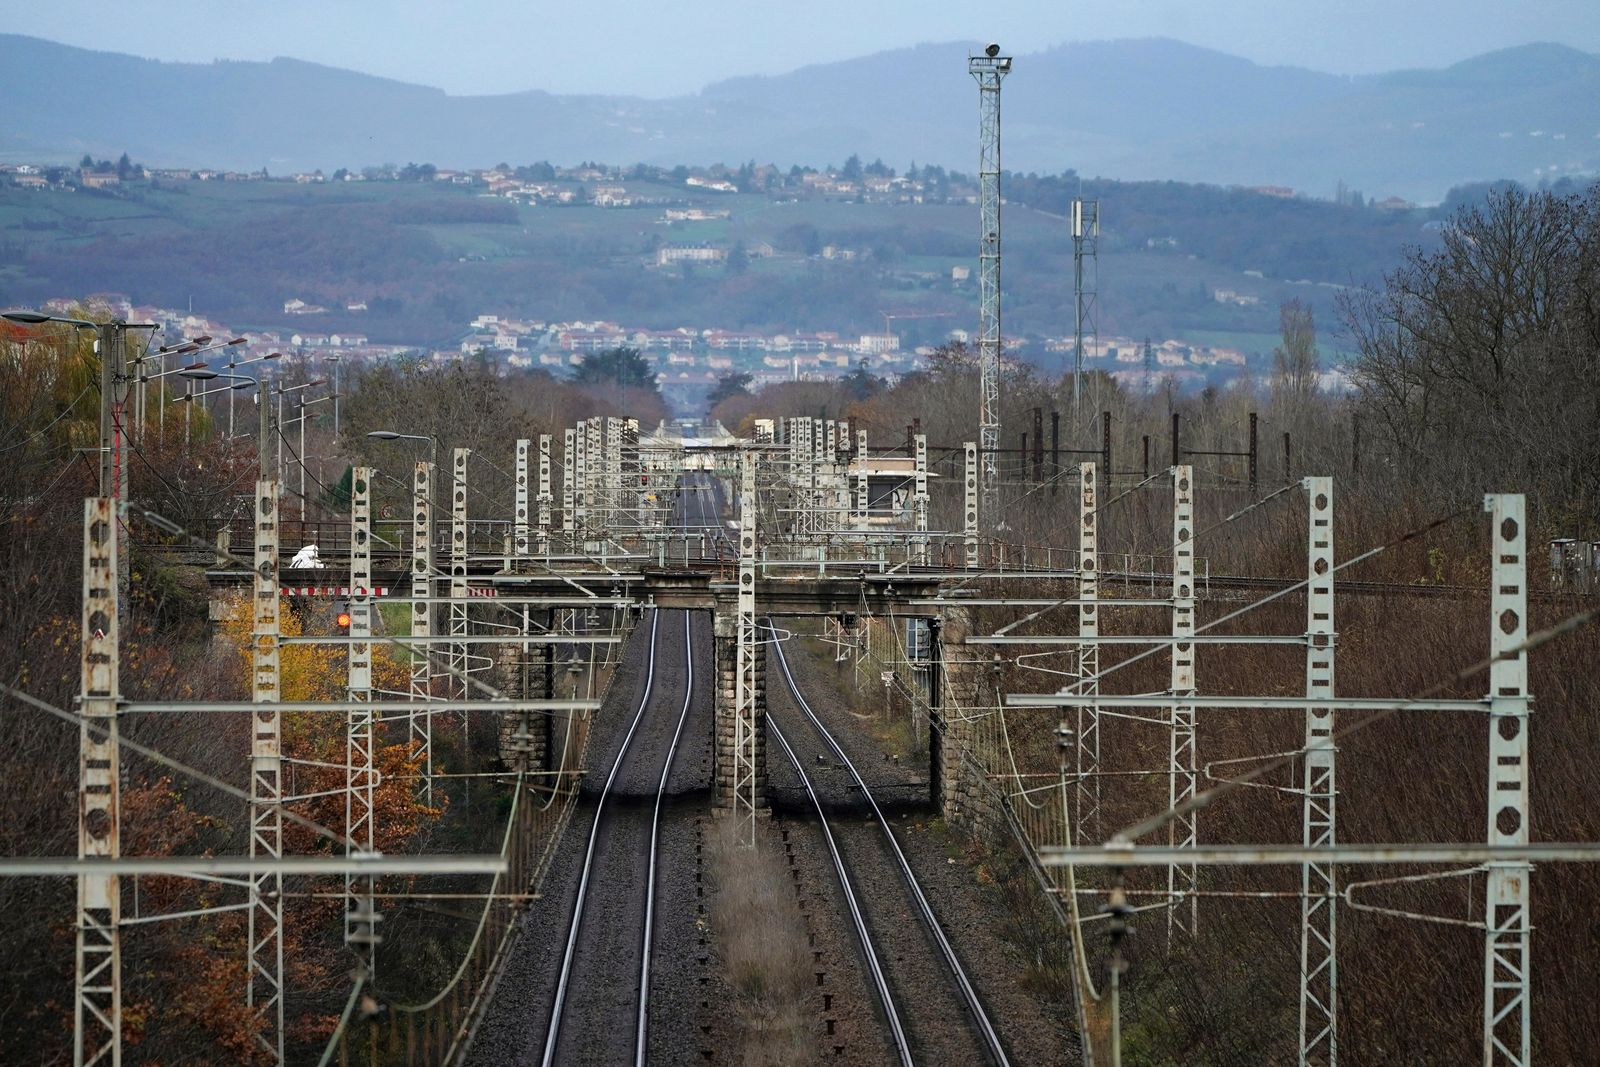 Rail tracks are pictured during a railway strike at the Saint Germain au Mont d'Or train station, around Lyon, central France, Monday, Dec. 9, 2019.{ } (AP Photo/Laurent Cipriani)